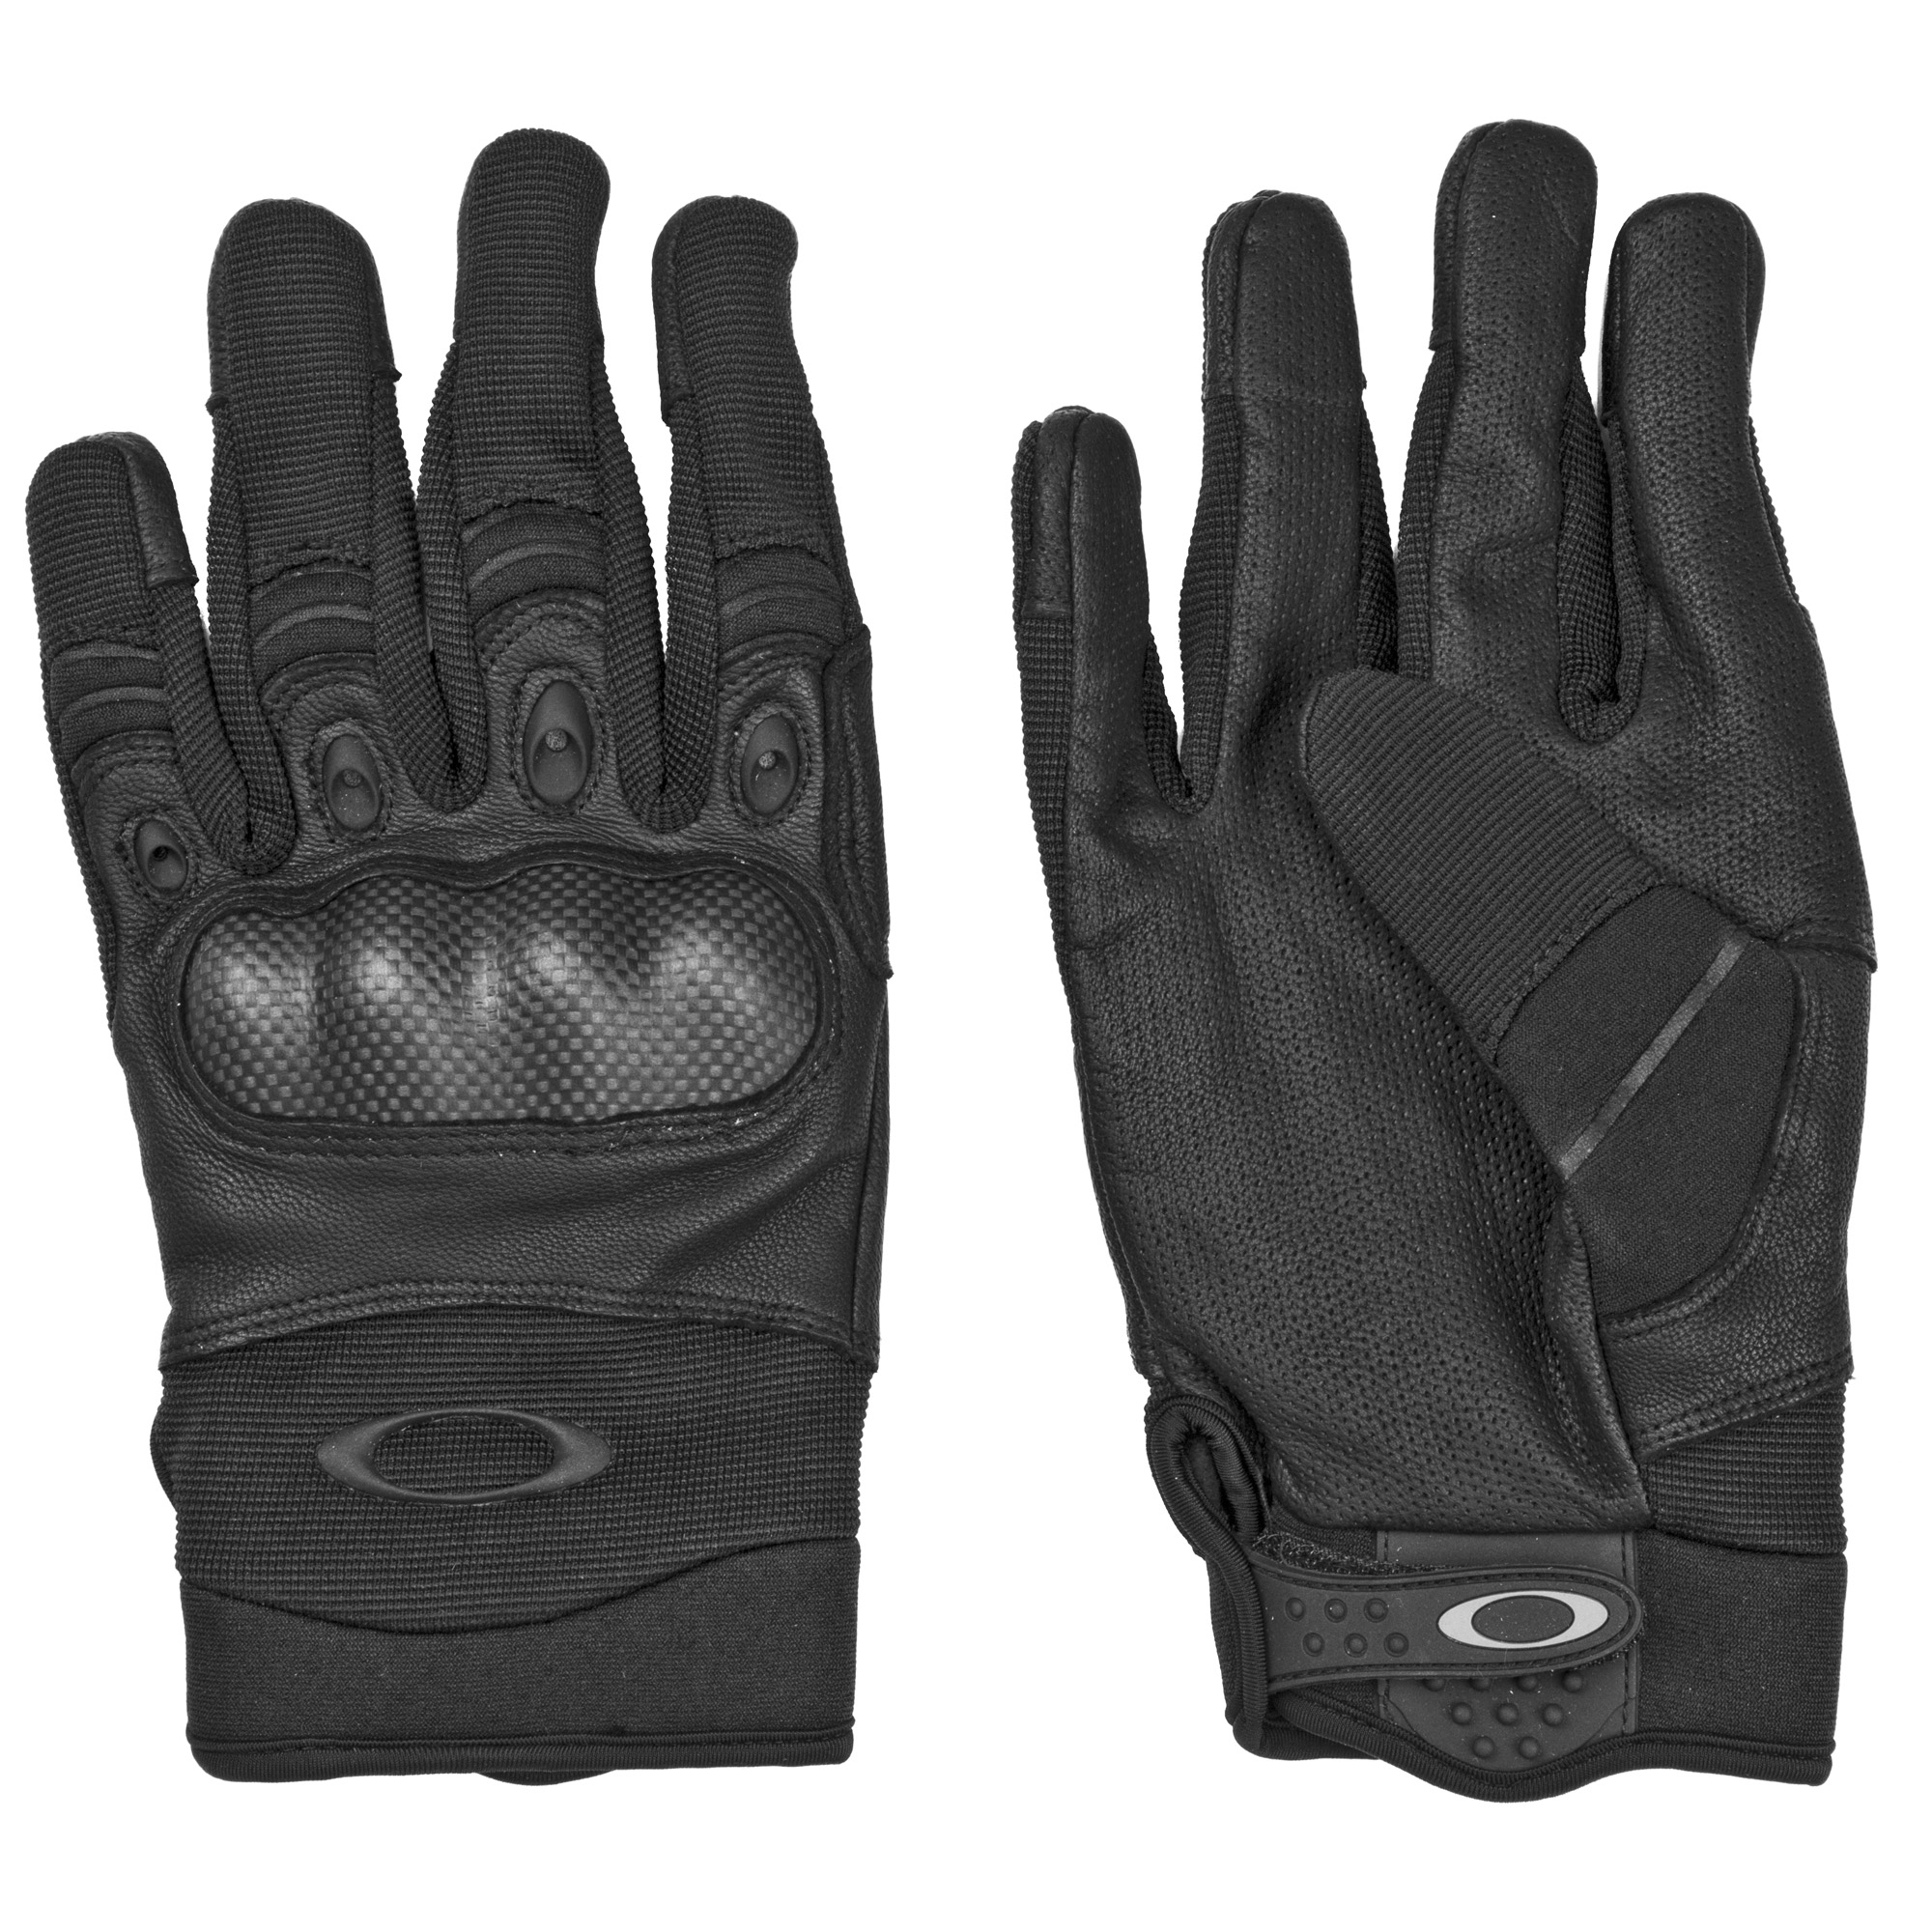 "The Factory Pilot Gloves are made of 70% Goat Skin"" 10% Elastane"" 8% Nylon"" 6% Chloroprene Rubber"" 3% Rubber"" and 3% Carbon. They feature a secure grip and textured pull for easy donning."